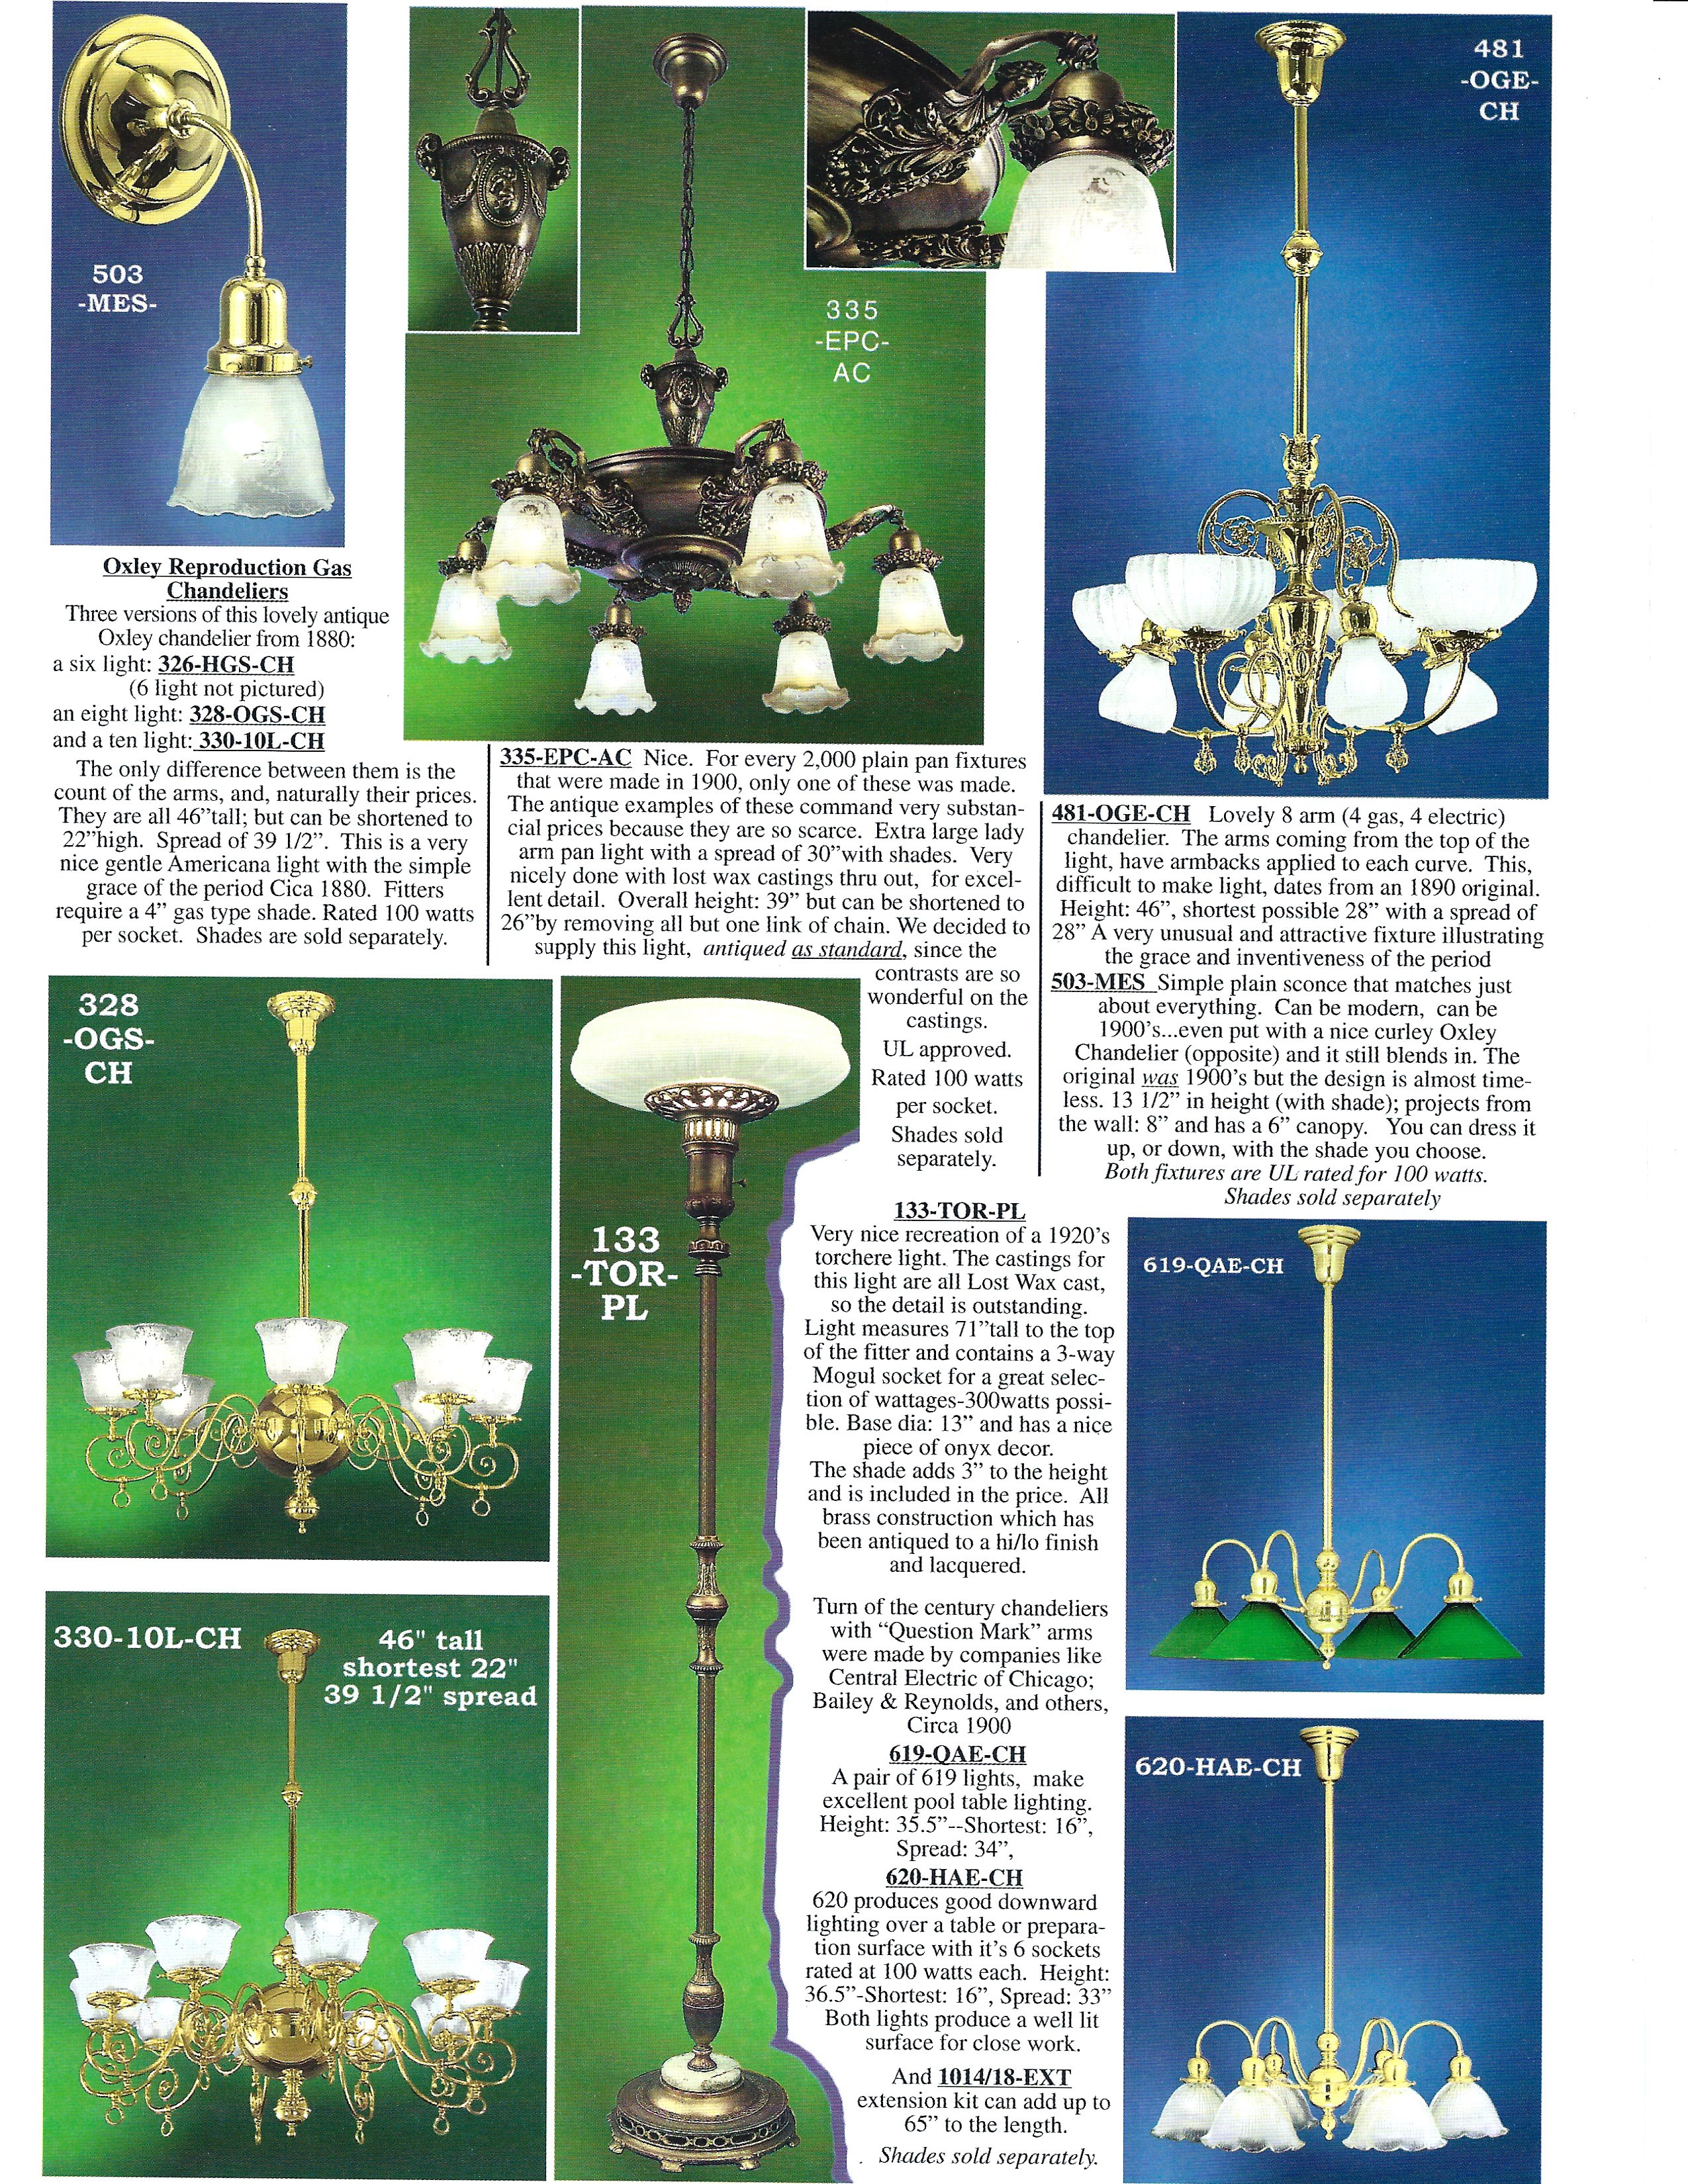 Catalog page 87